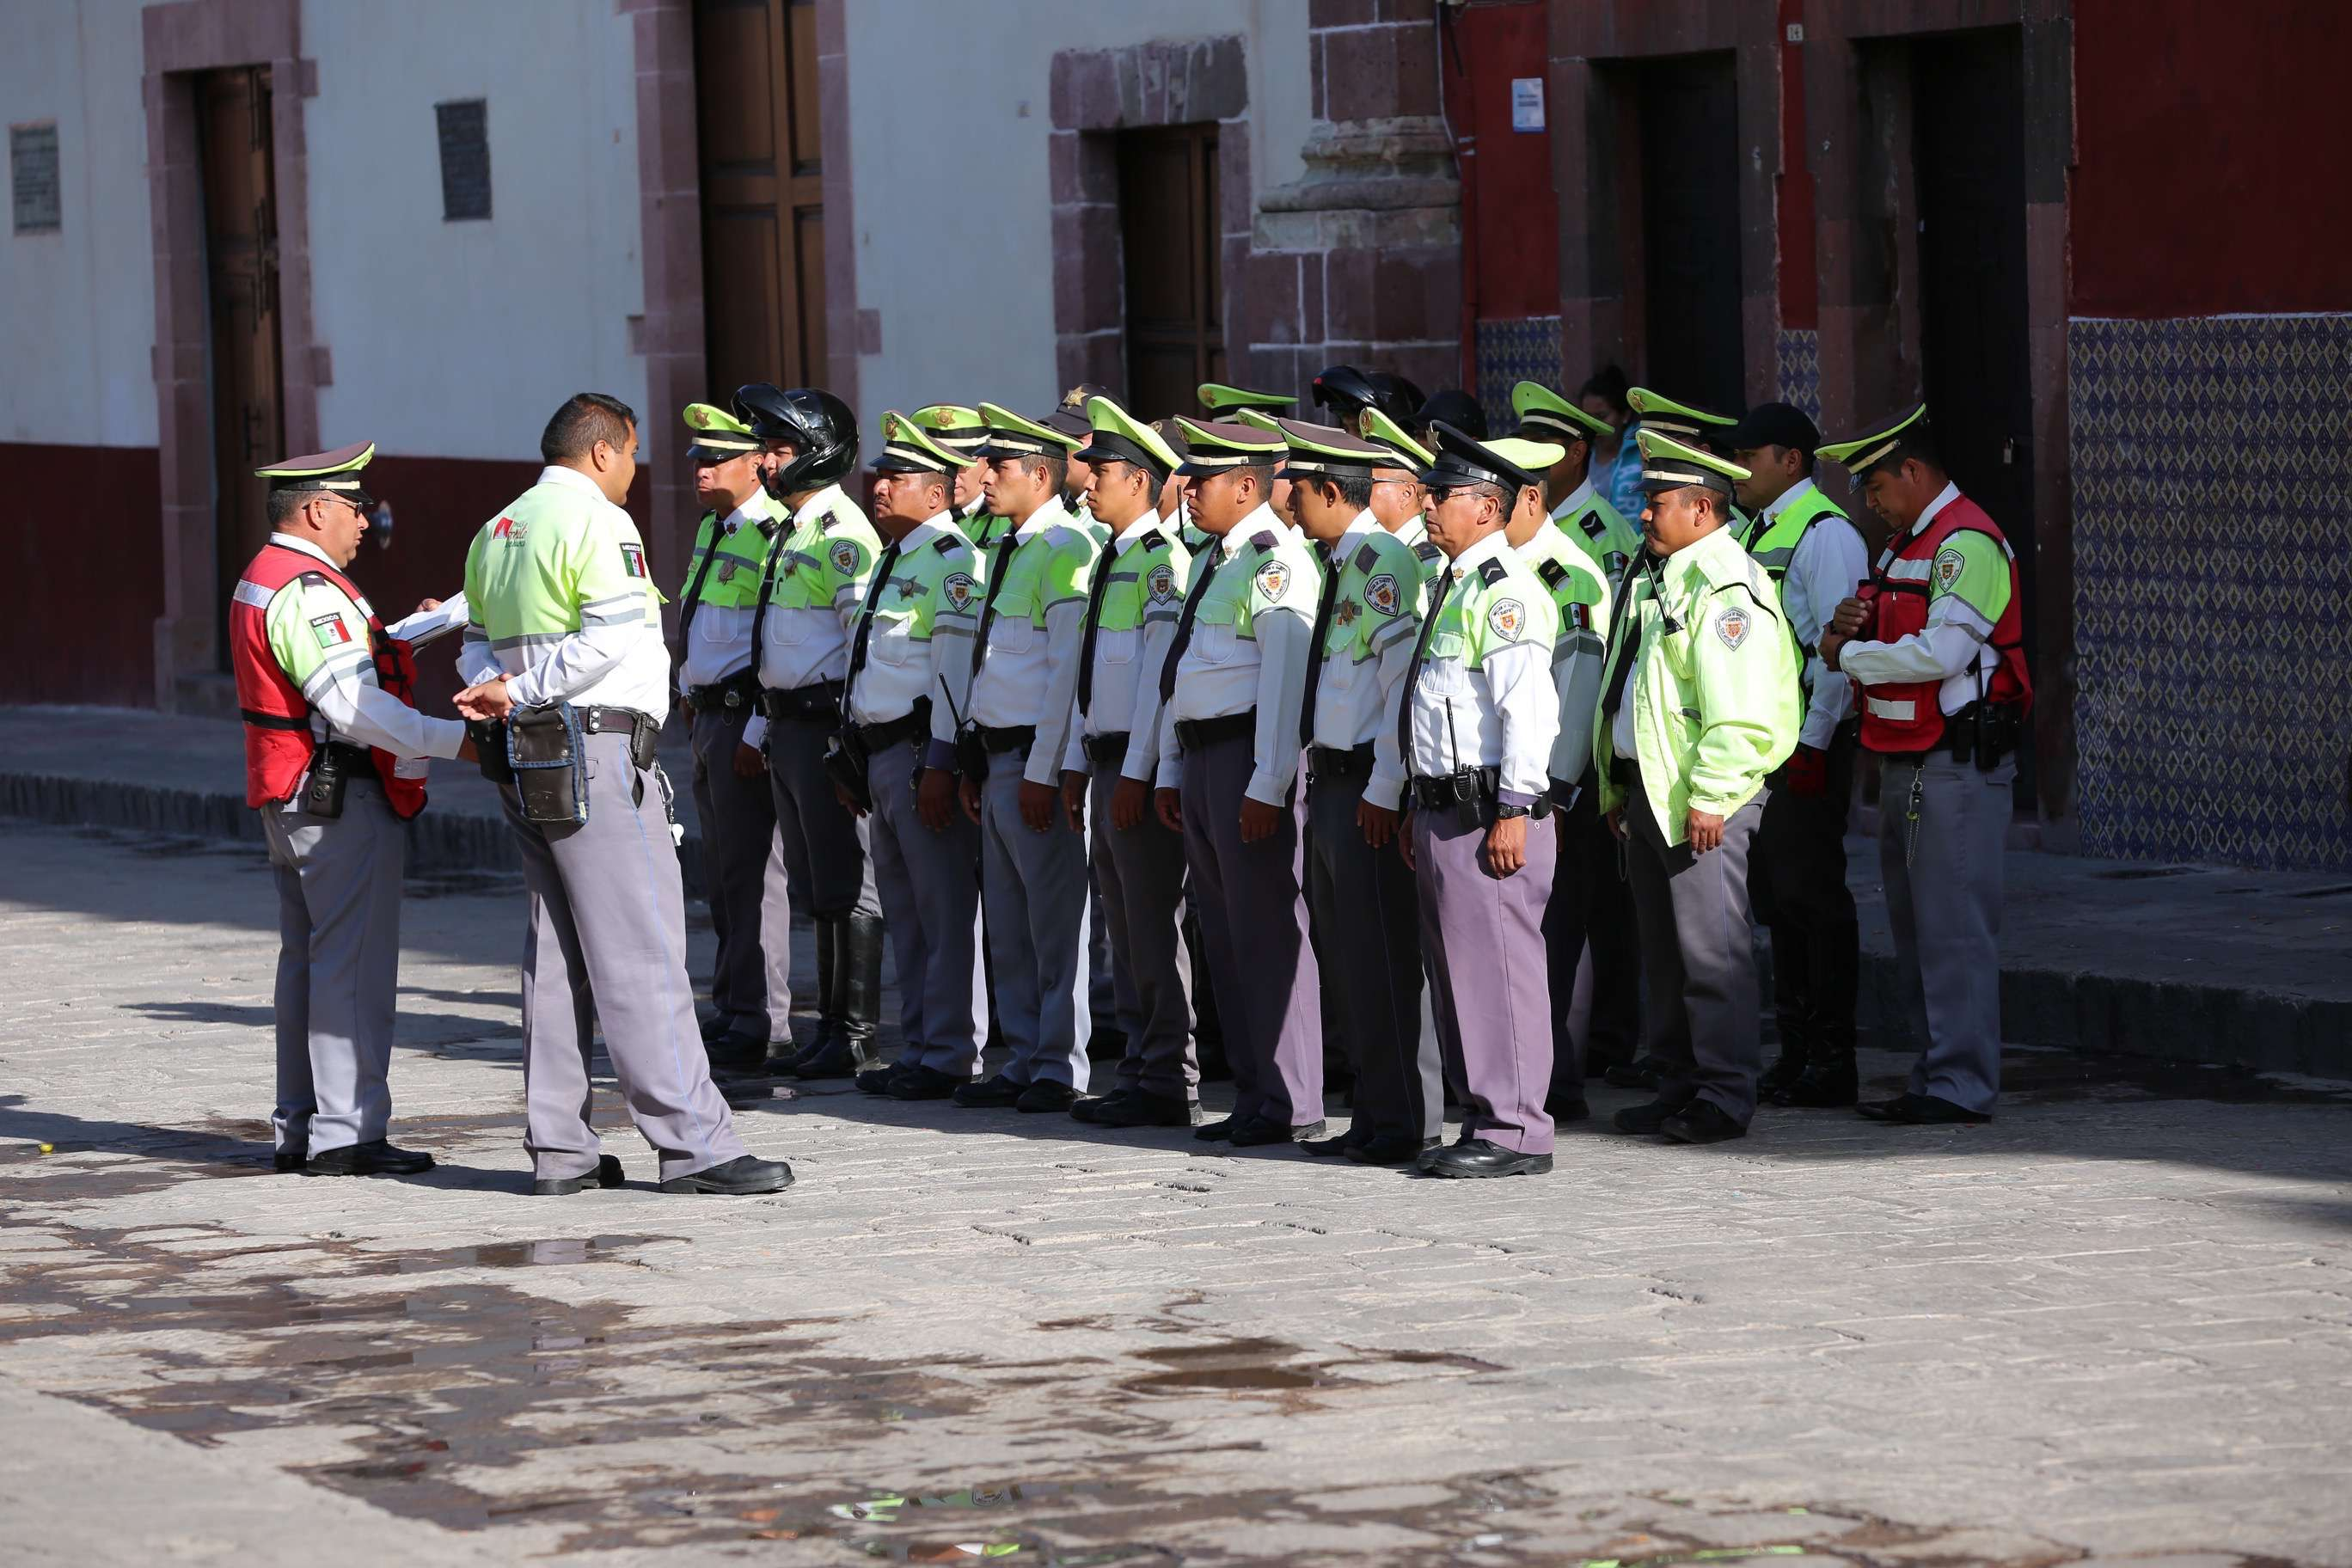 The morning shape-up for the traffic enforcement team is augmented by local and state police, making San Miguel de Allende very safe.